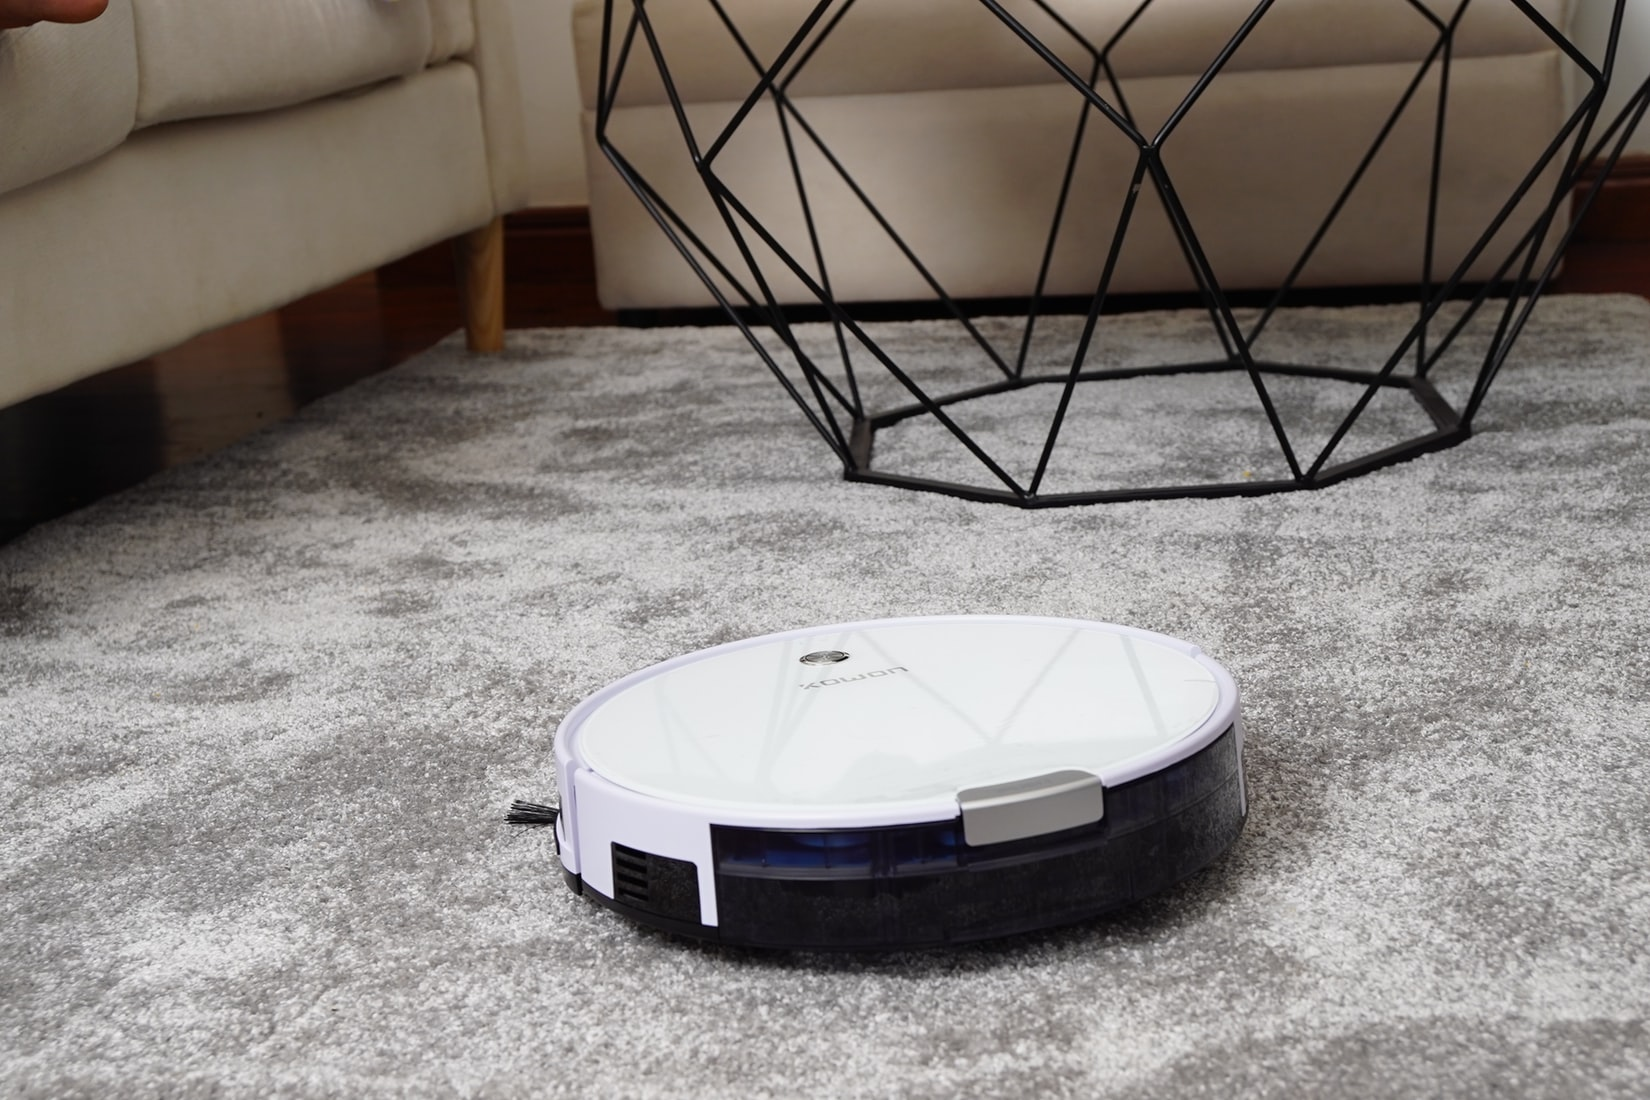 Robot Vacuums Or Traditional Vacuums?